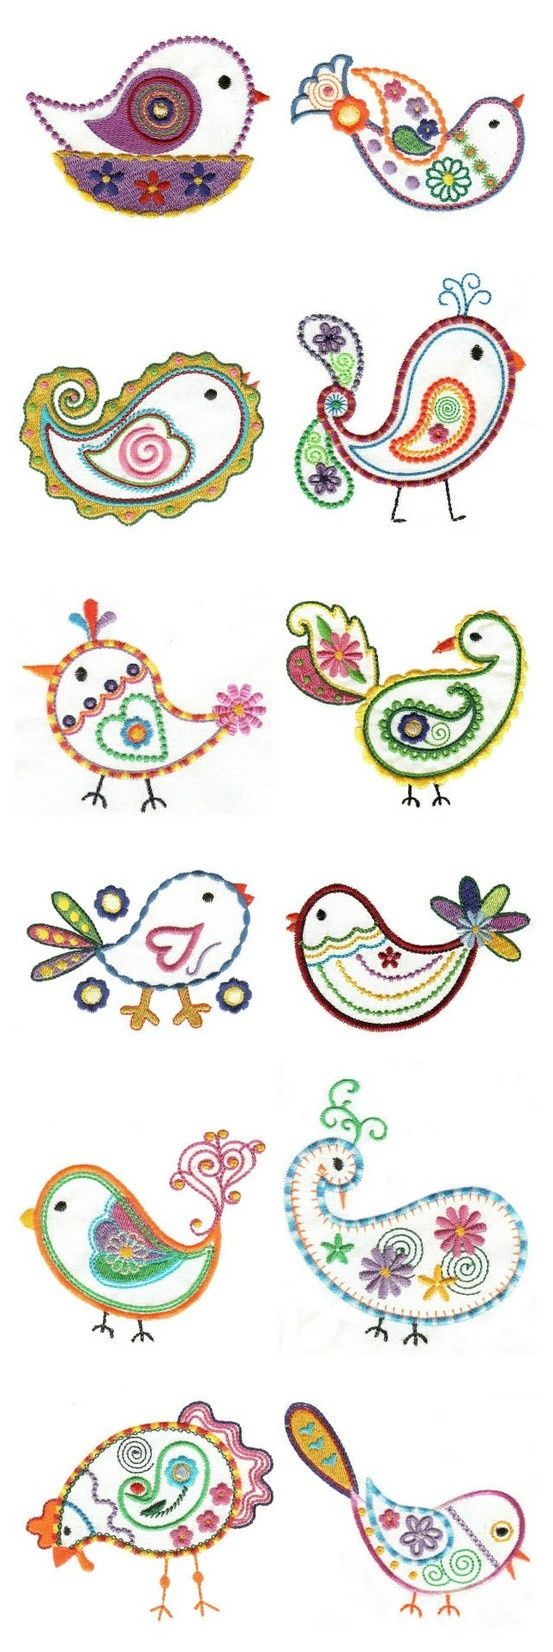 """Cute stitched birdies would be so pretty as simple painted designs on a wall - separate in random places, like atop a door frame or """"perched"""" on backsplash behind a sink"""